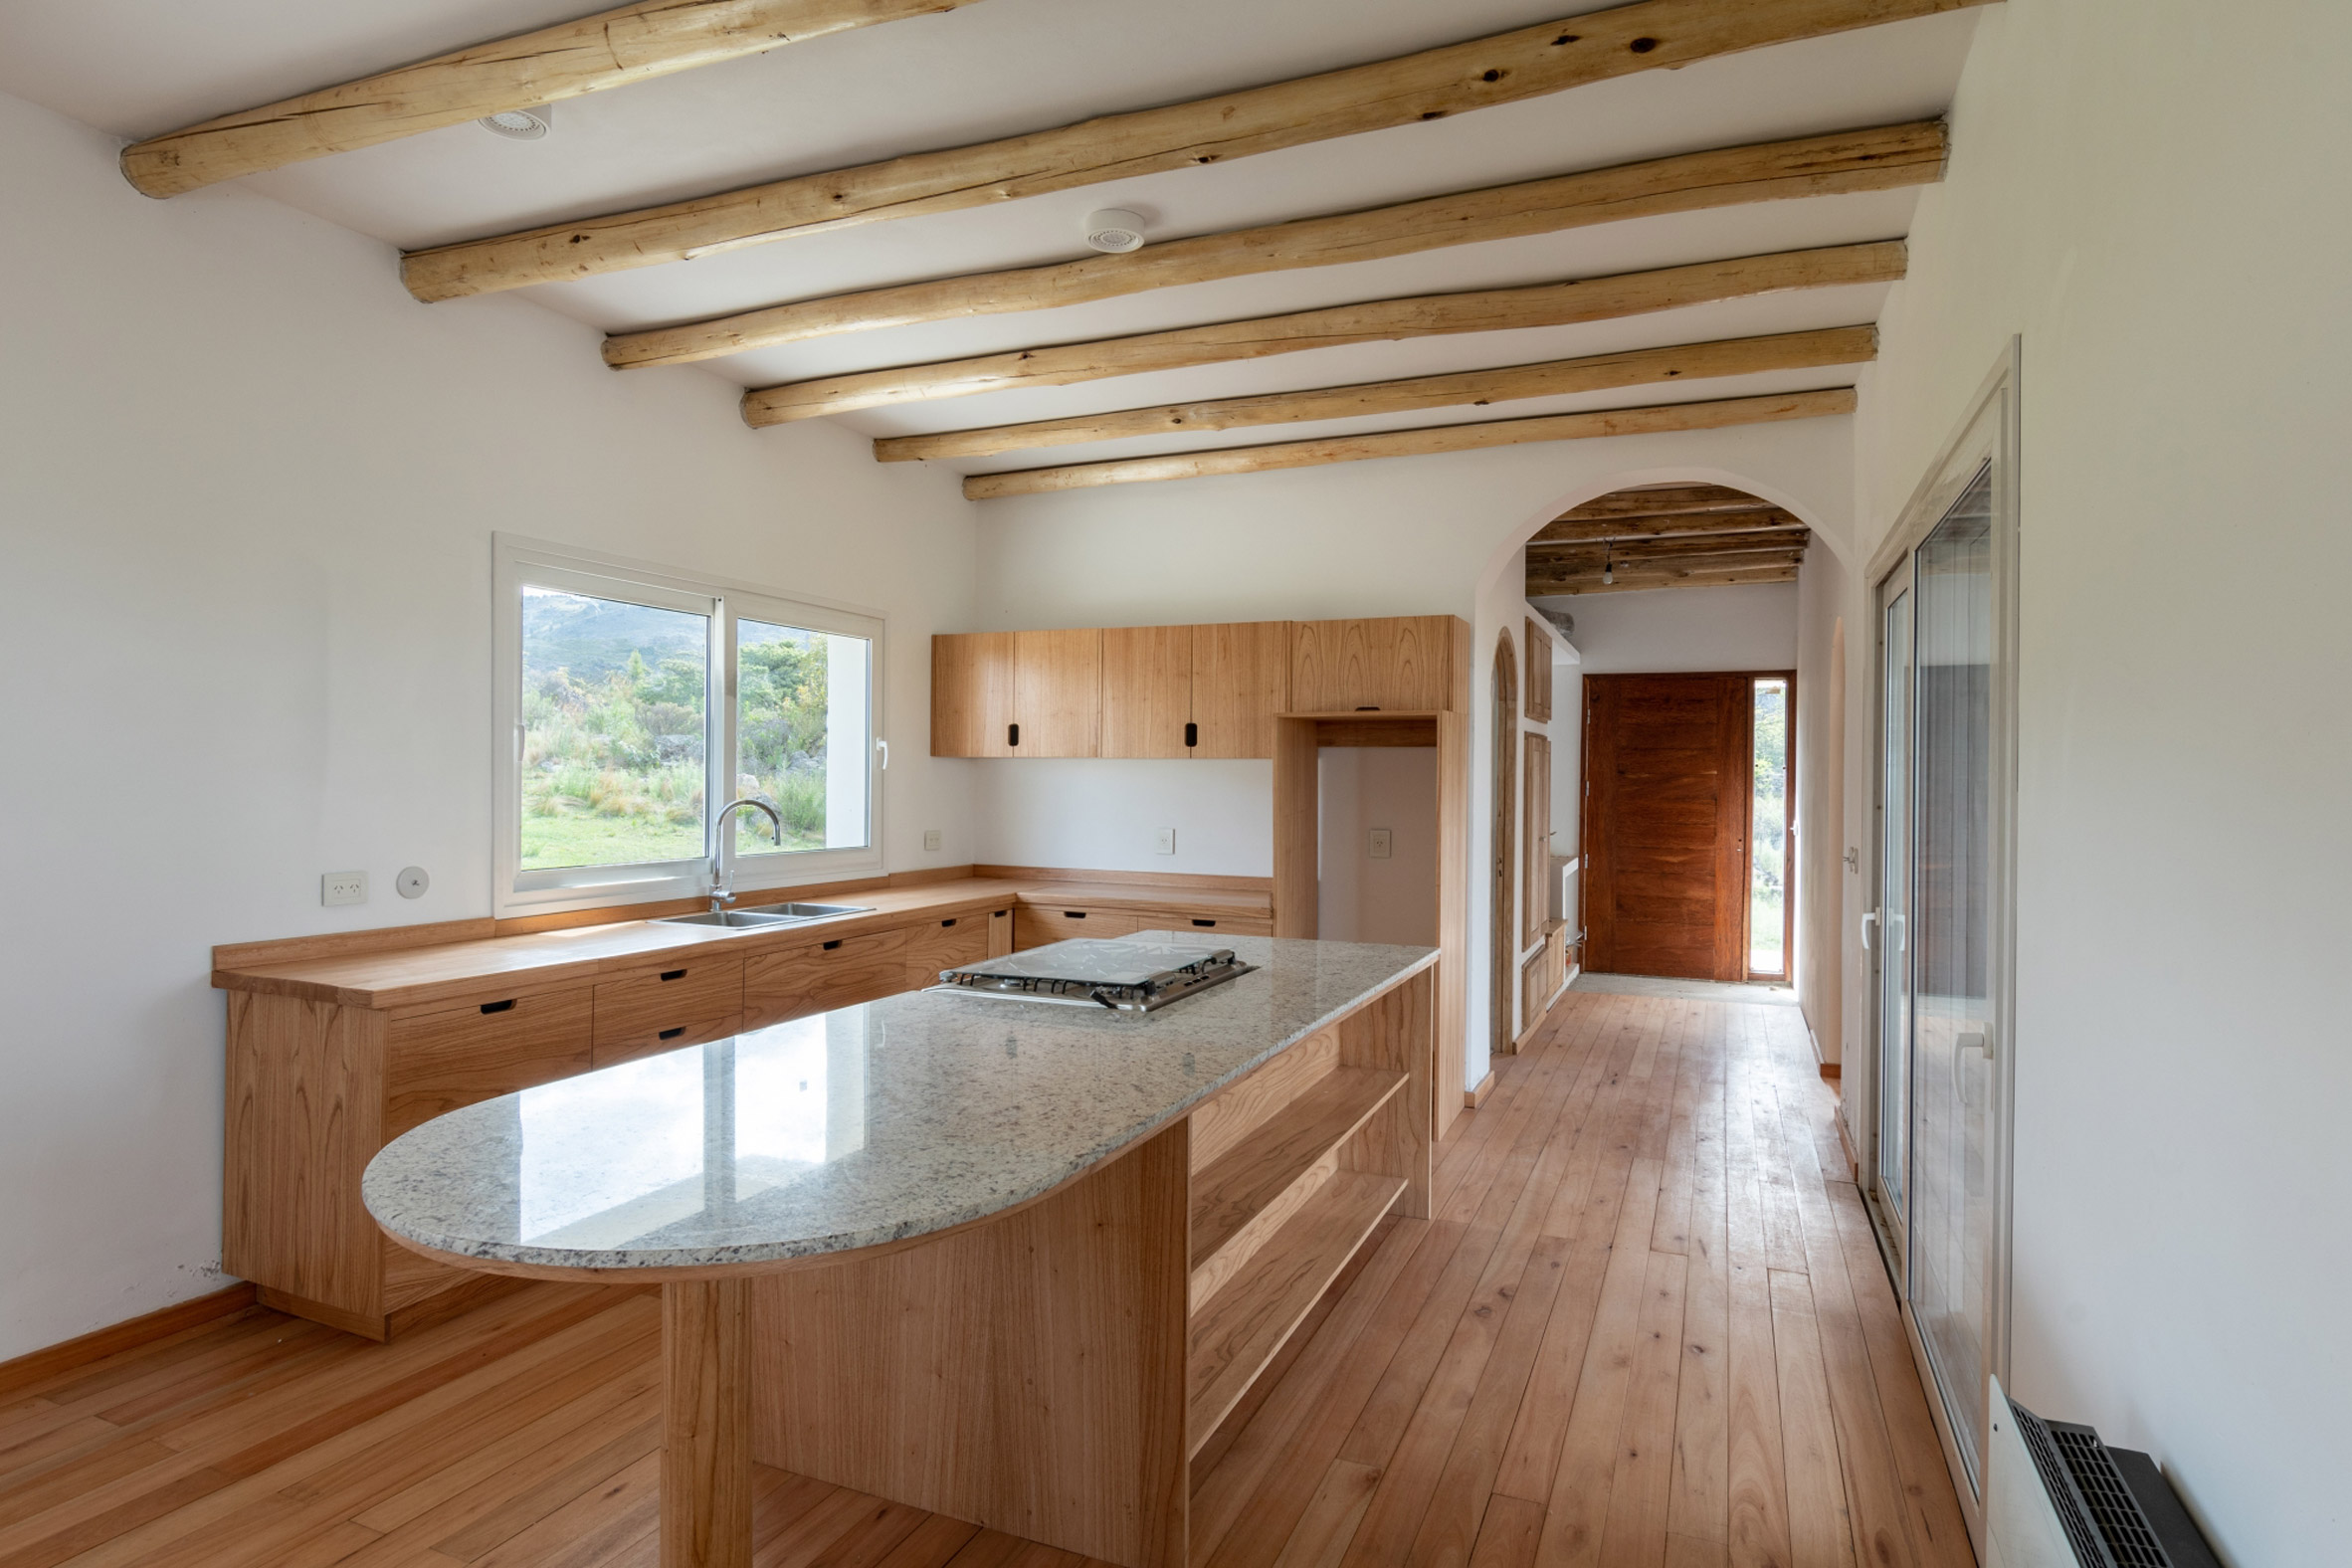 Kitchen in Casa Elisa by Grupo Boreal